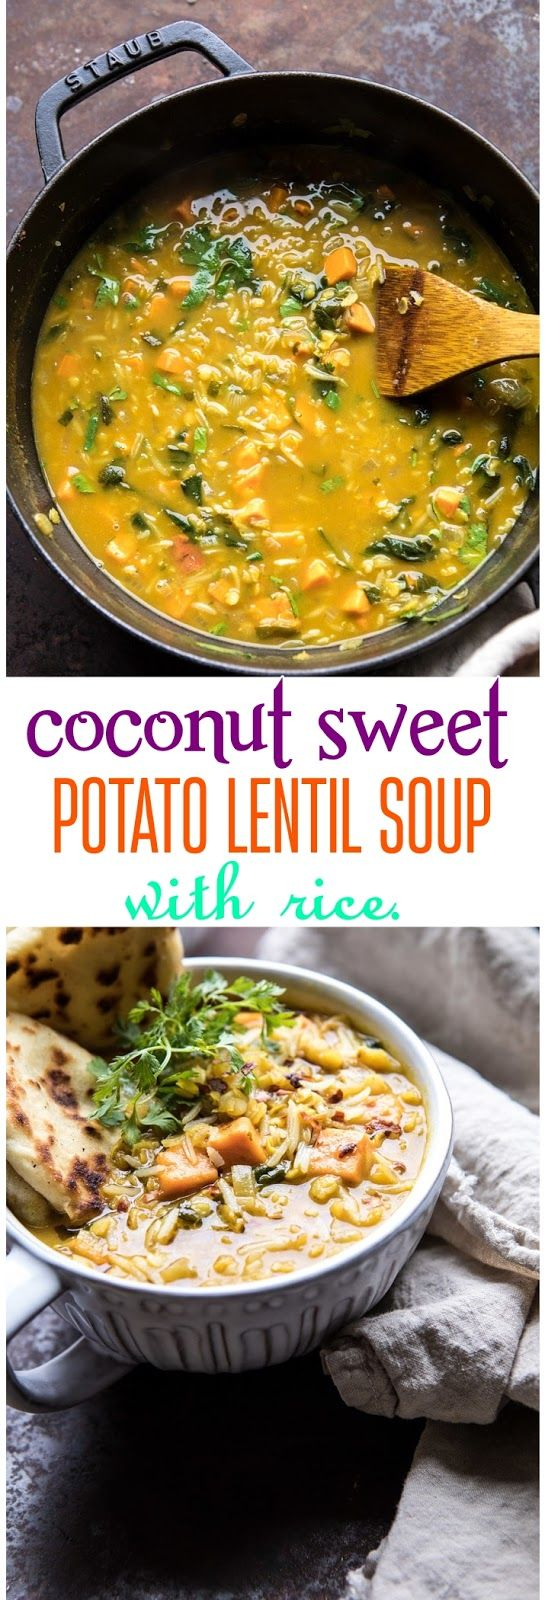 coconut sweet potato lentil soup with rice. (With images ...